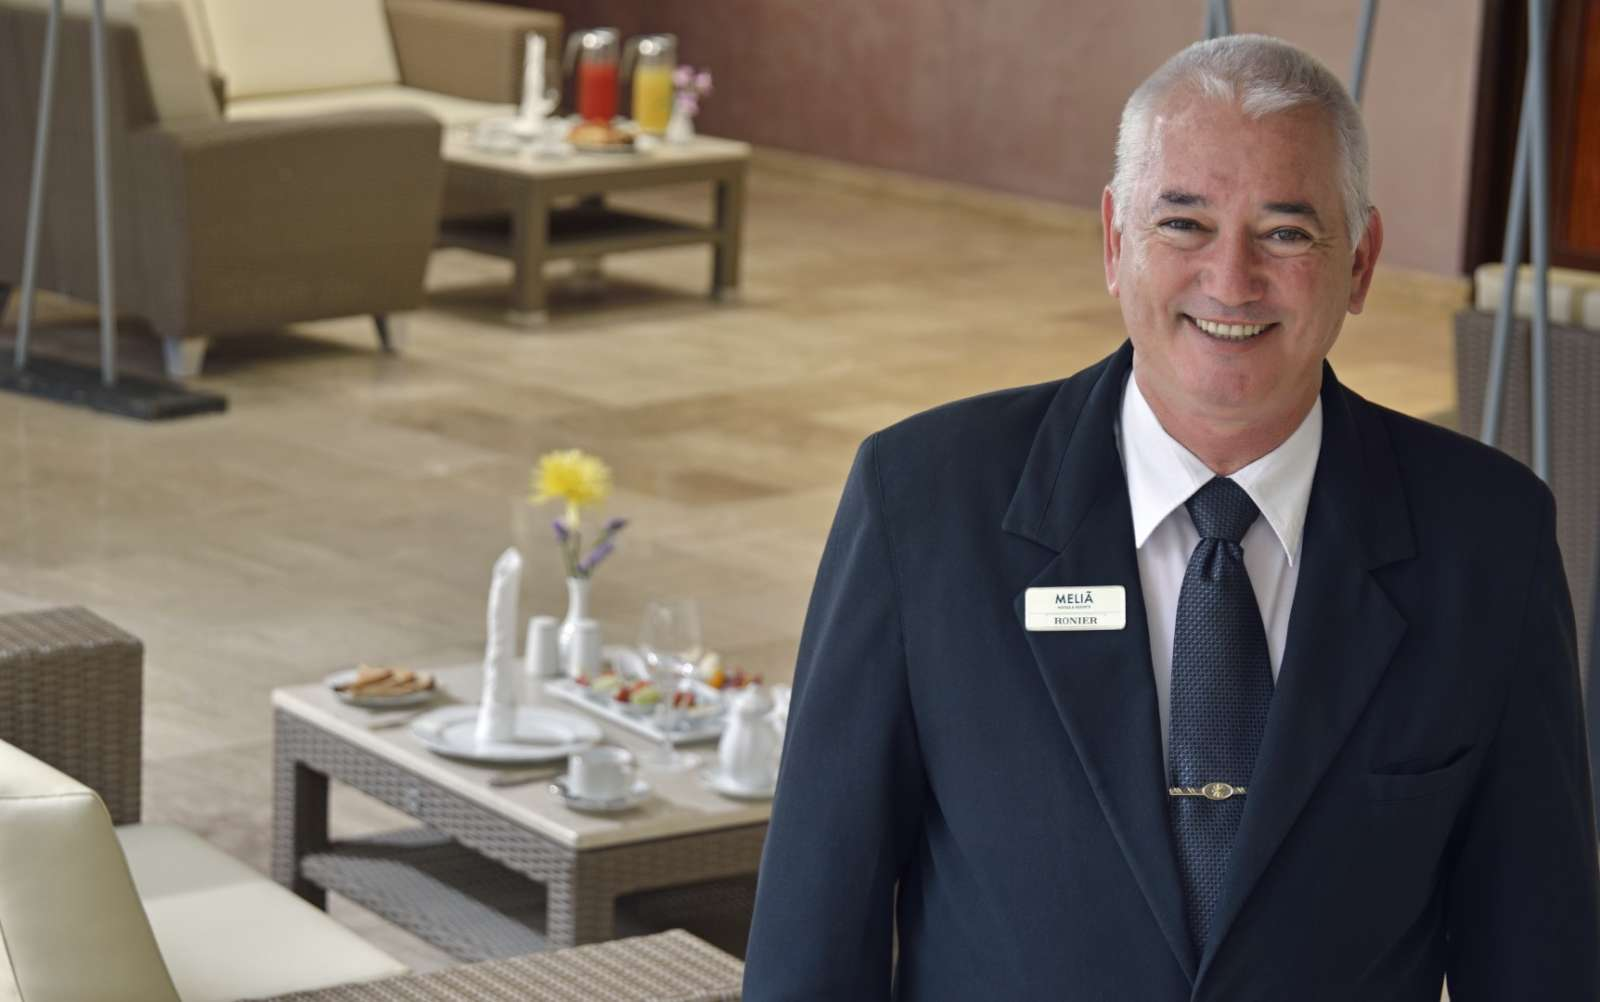 Concierge at Melia Buenavista